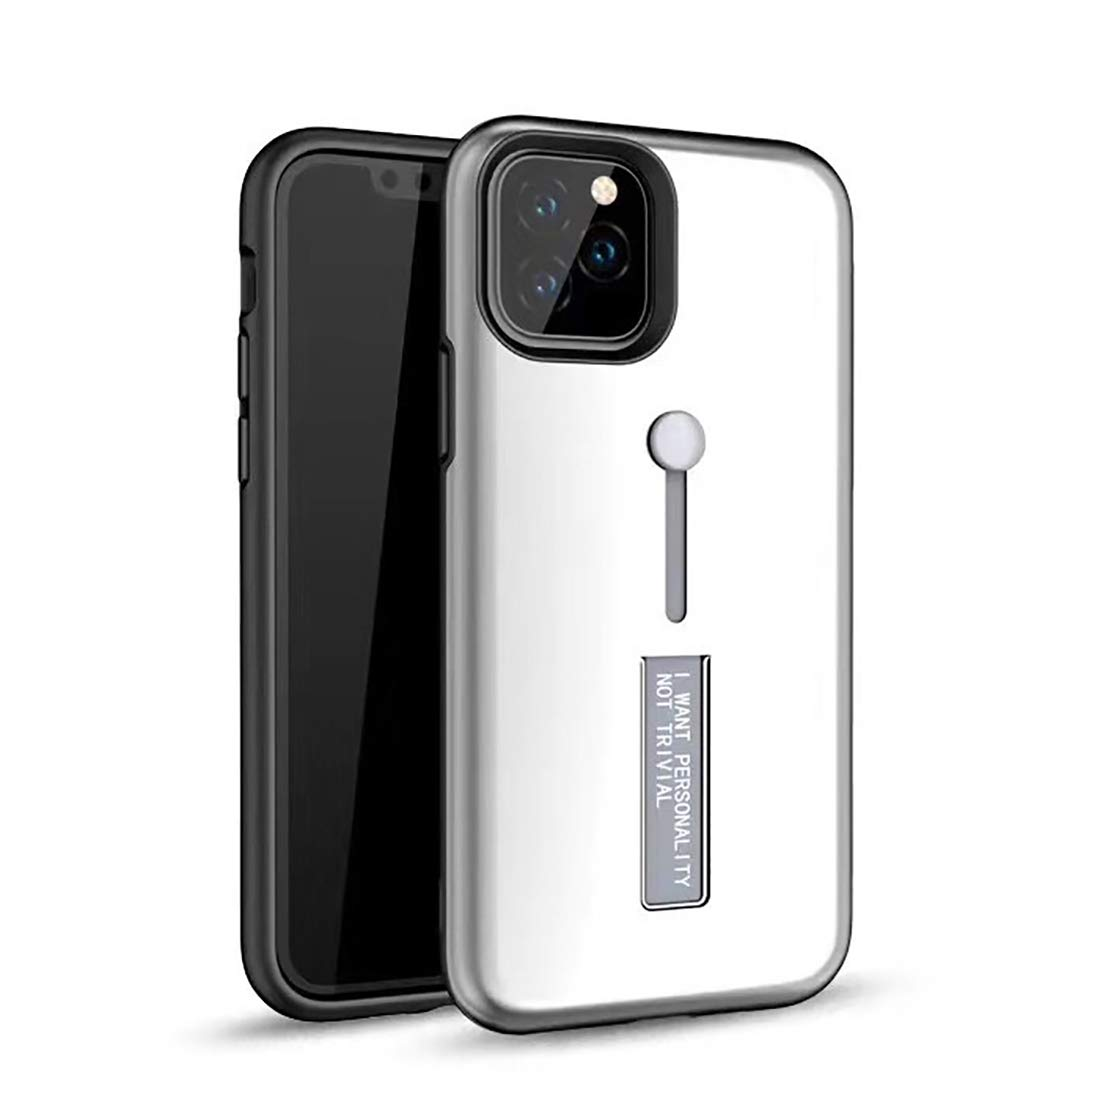 Seabaras iPhone 11 Pro Max Case,Finger Loop Strap Hide Stand Holder Kickstand Case for iPhone 11 Pro Max (Silver)